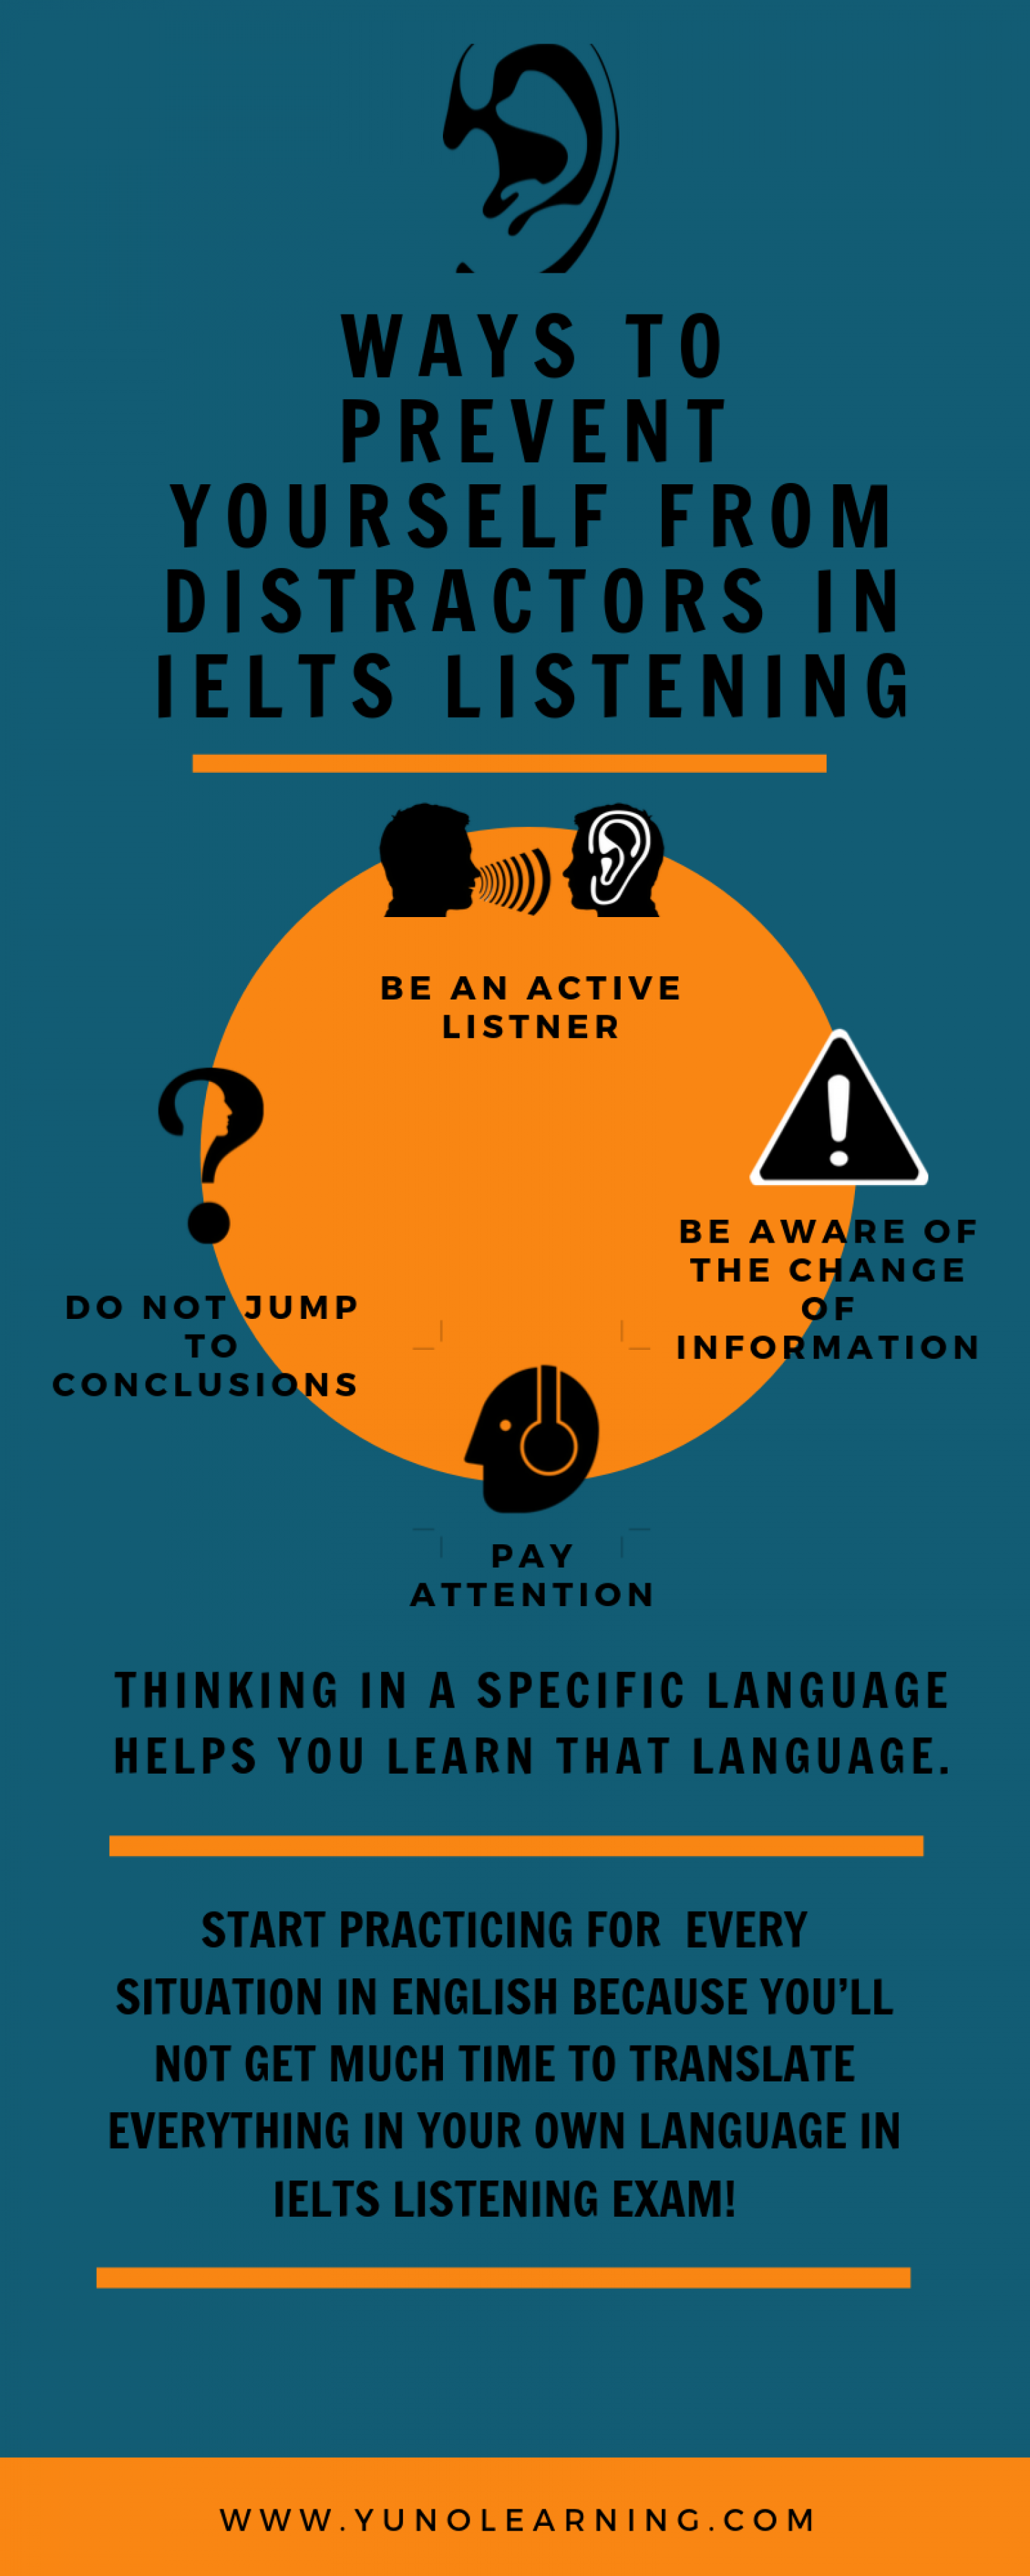 Ways To Prevent Yourself From Distractors In IELTS Listening Infographic